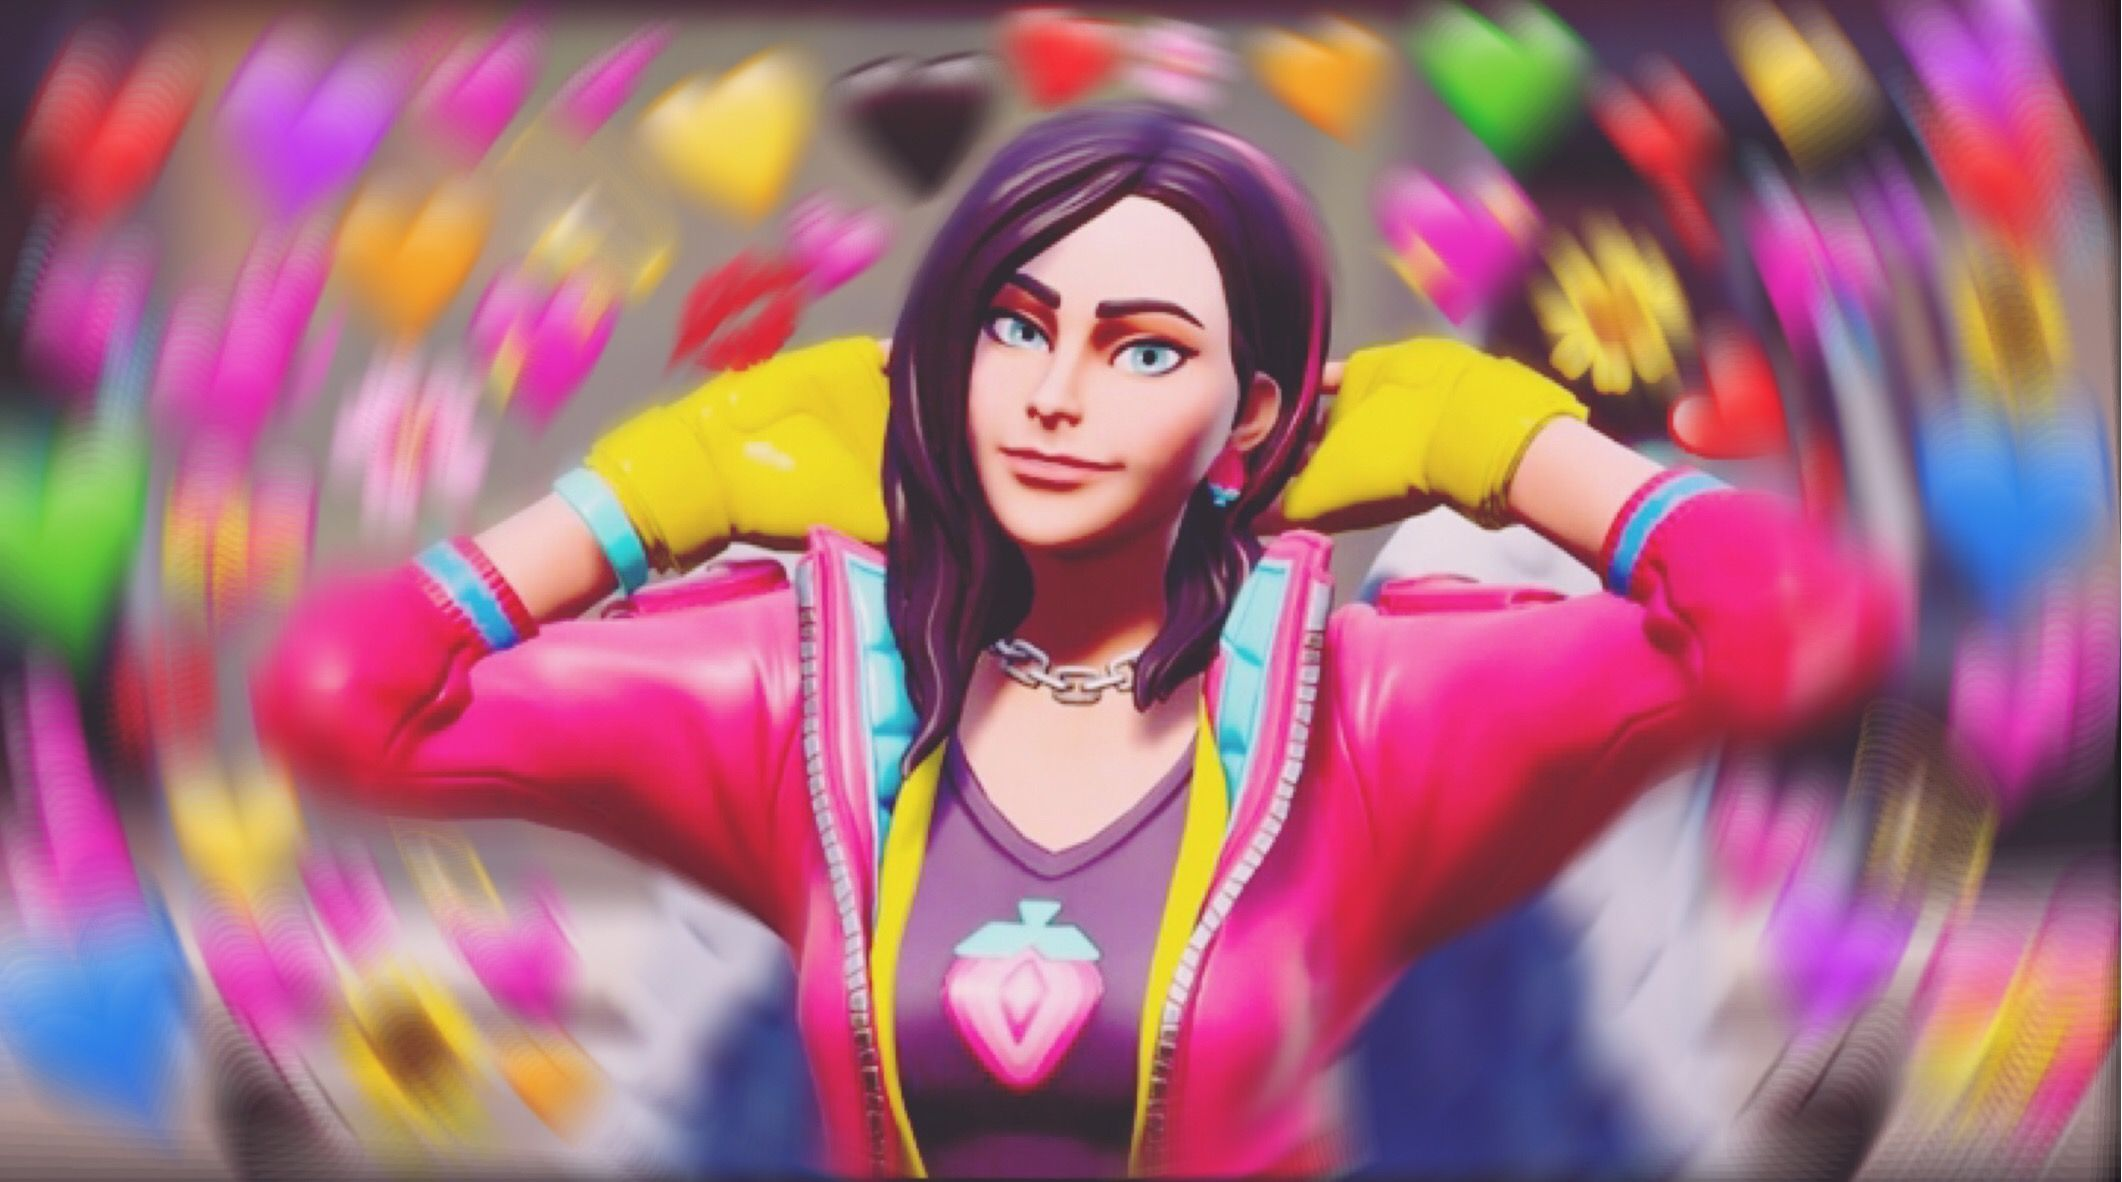 Aww I Got So Many Follows Thank You Ilya Best Gaming Wallpapers Epic Games Fortnite Gaming Wallpapers